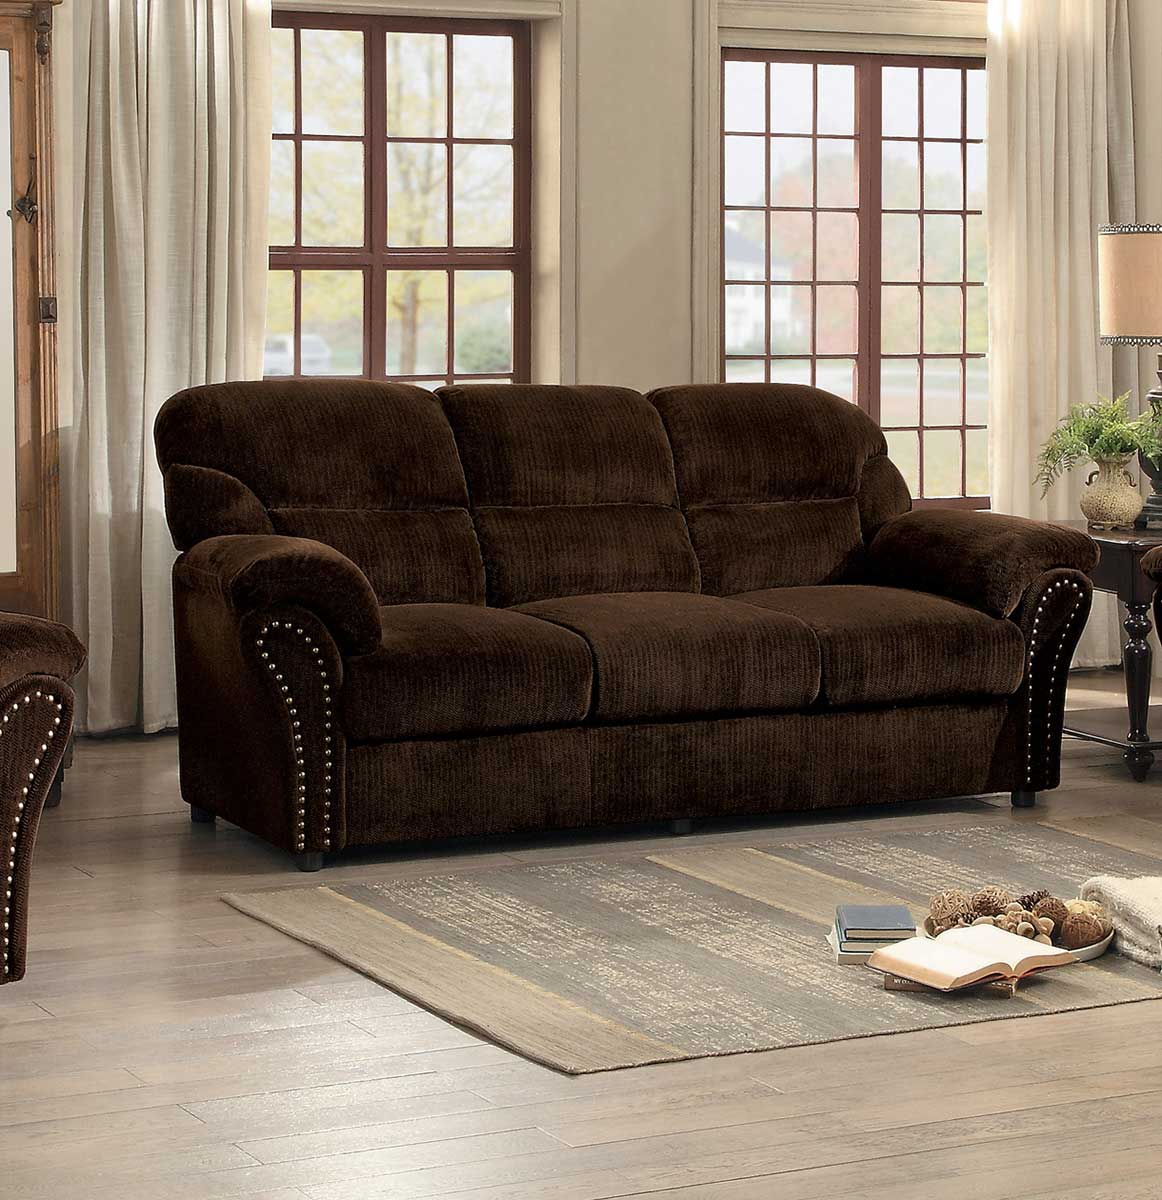 Homelegance Valentina Sofa Dark Brown